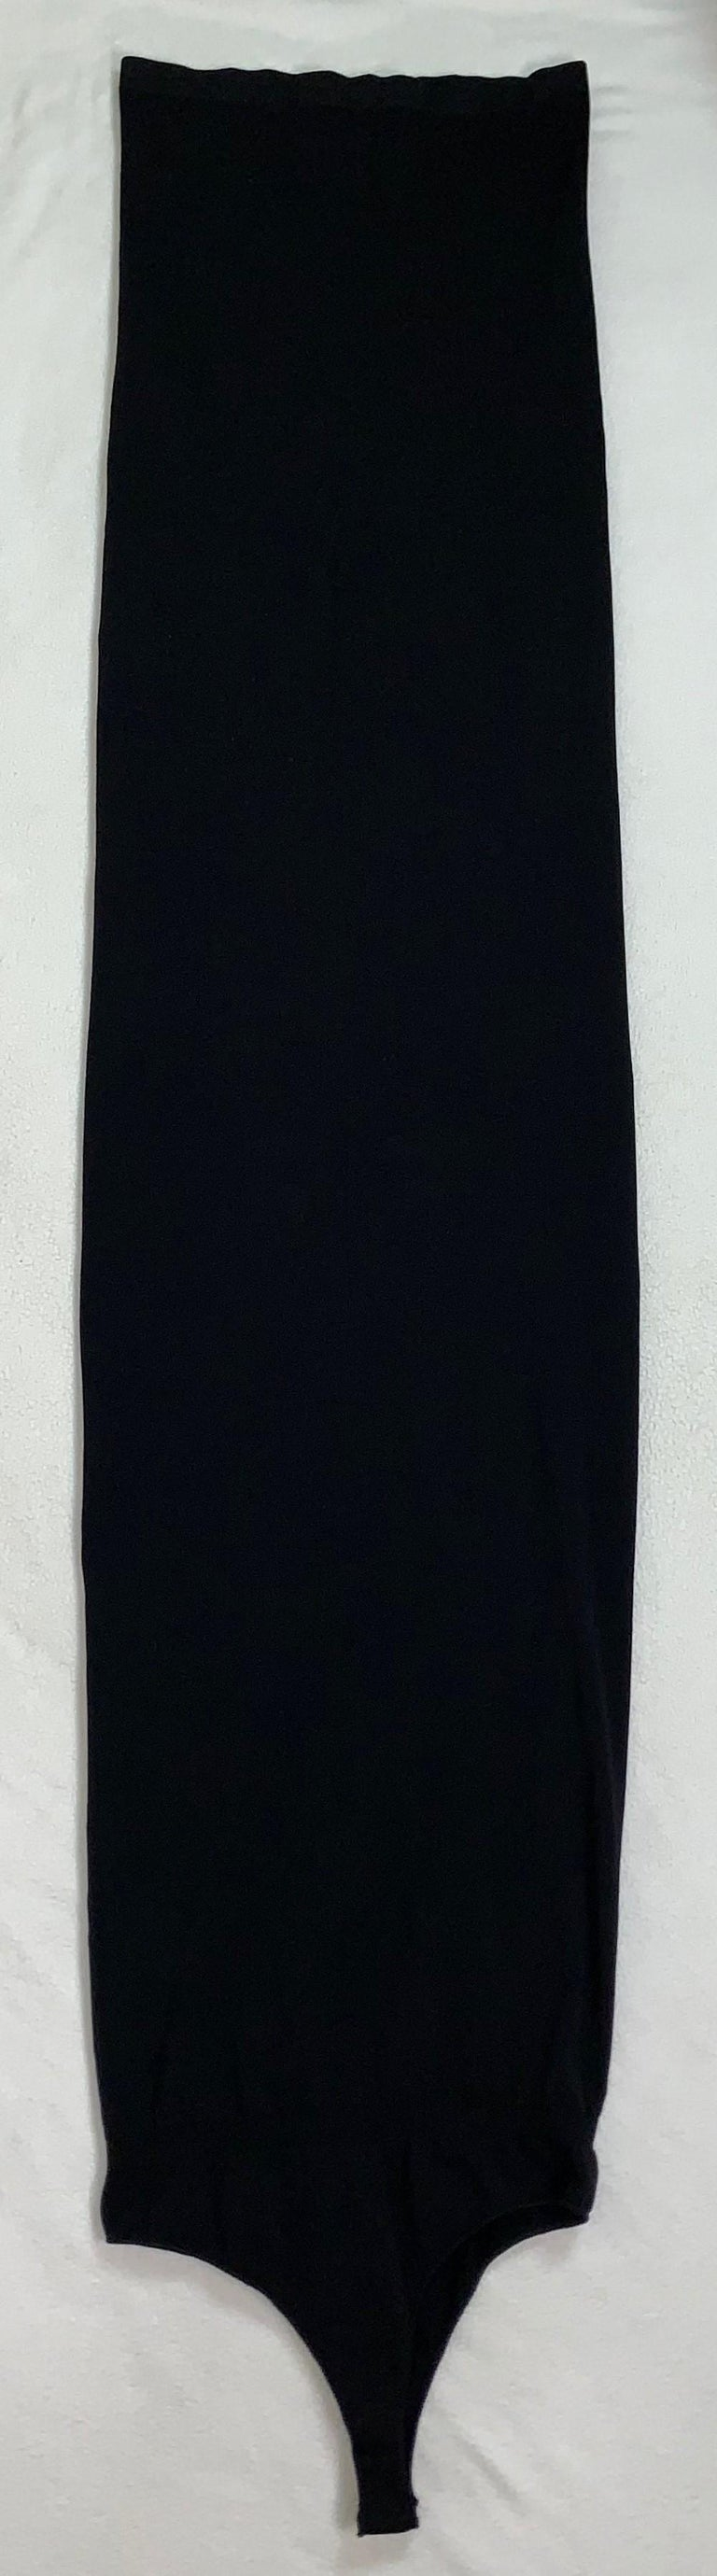 S/S 2011 Yves Saint Laurent Black Nylon Bodystocking Wiggle Dress Skirt S In Good Condition For Sale In Yukon, OK